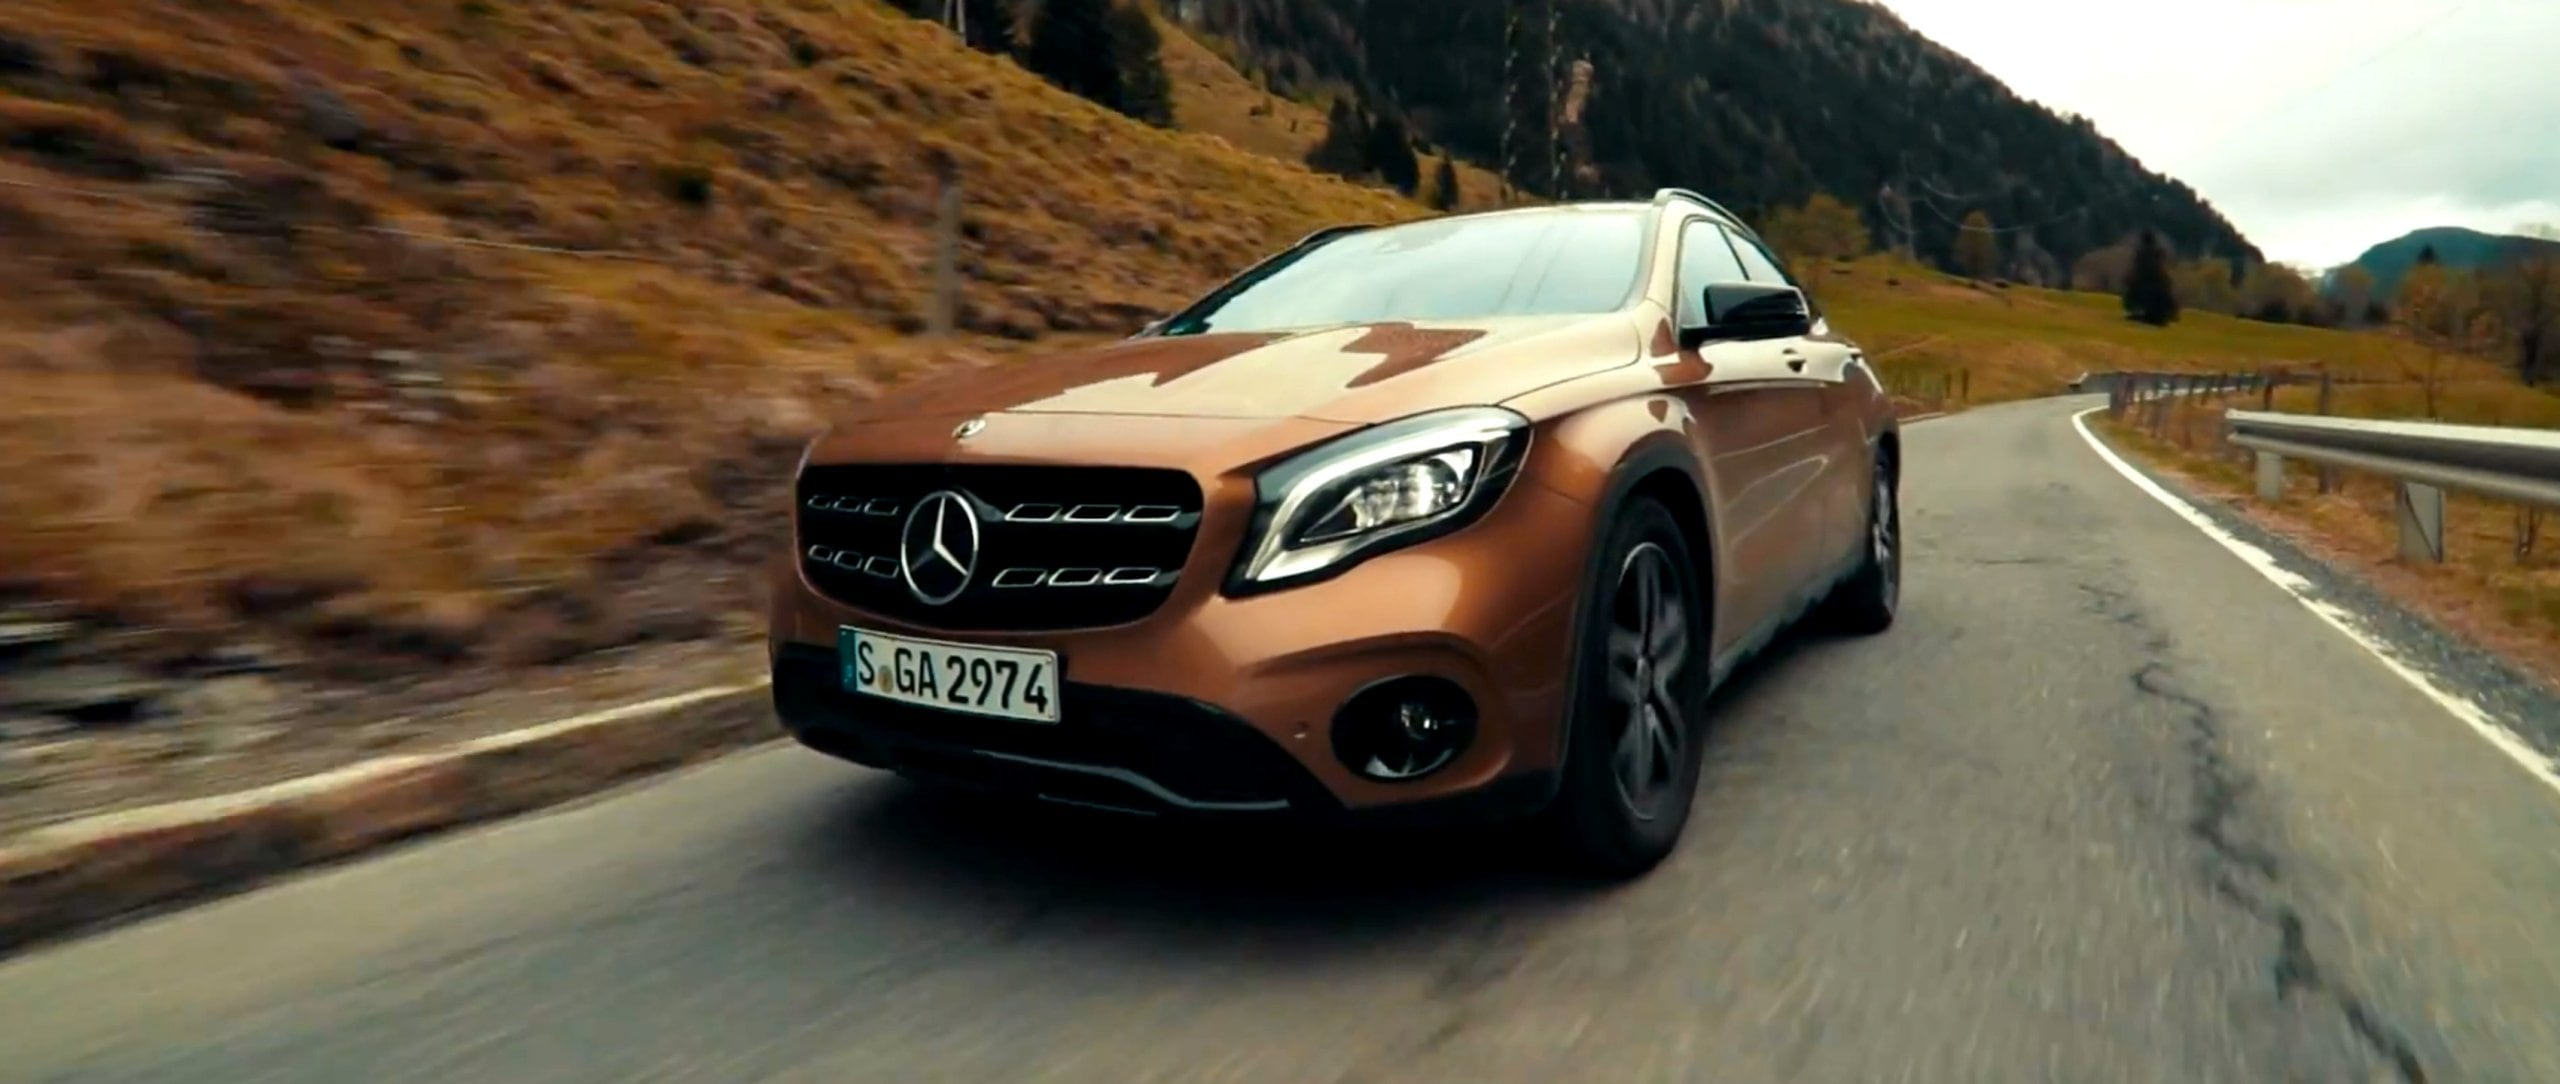 Mercedes-Benz: #MBvideocar – GLA in Hungary.